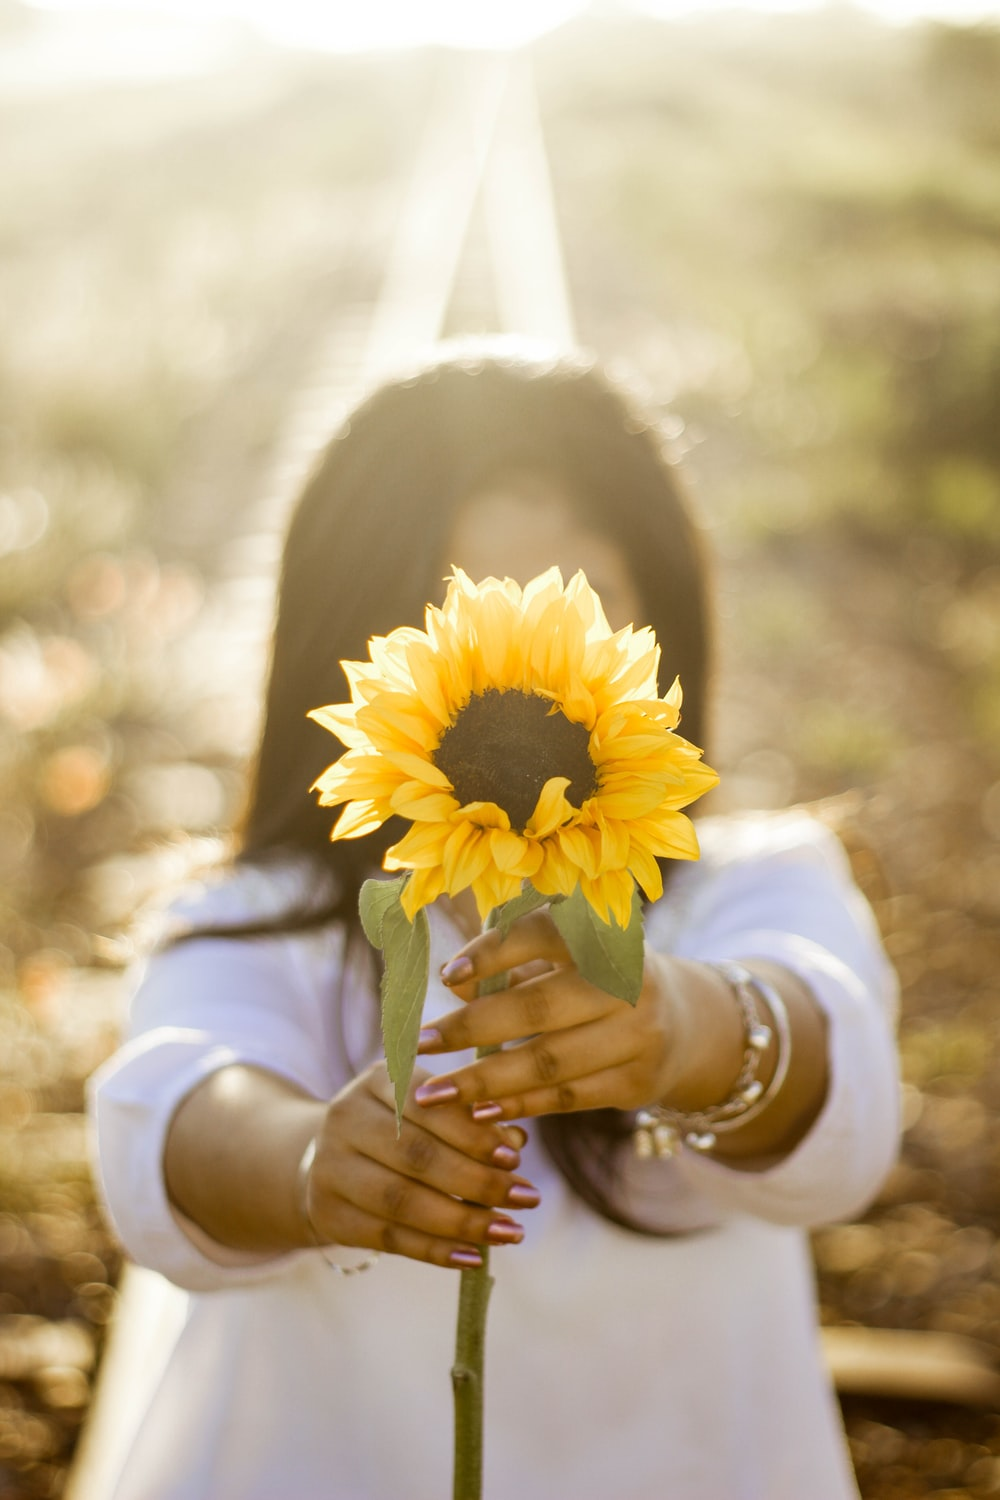 woman holding up sunflower outdoor during daytime